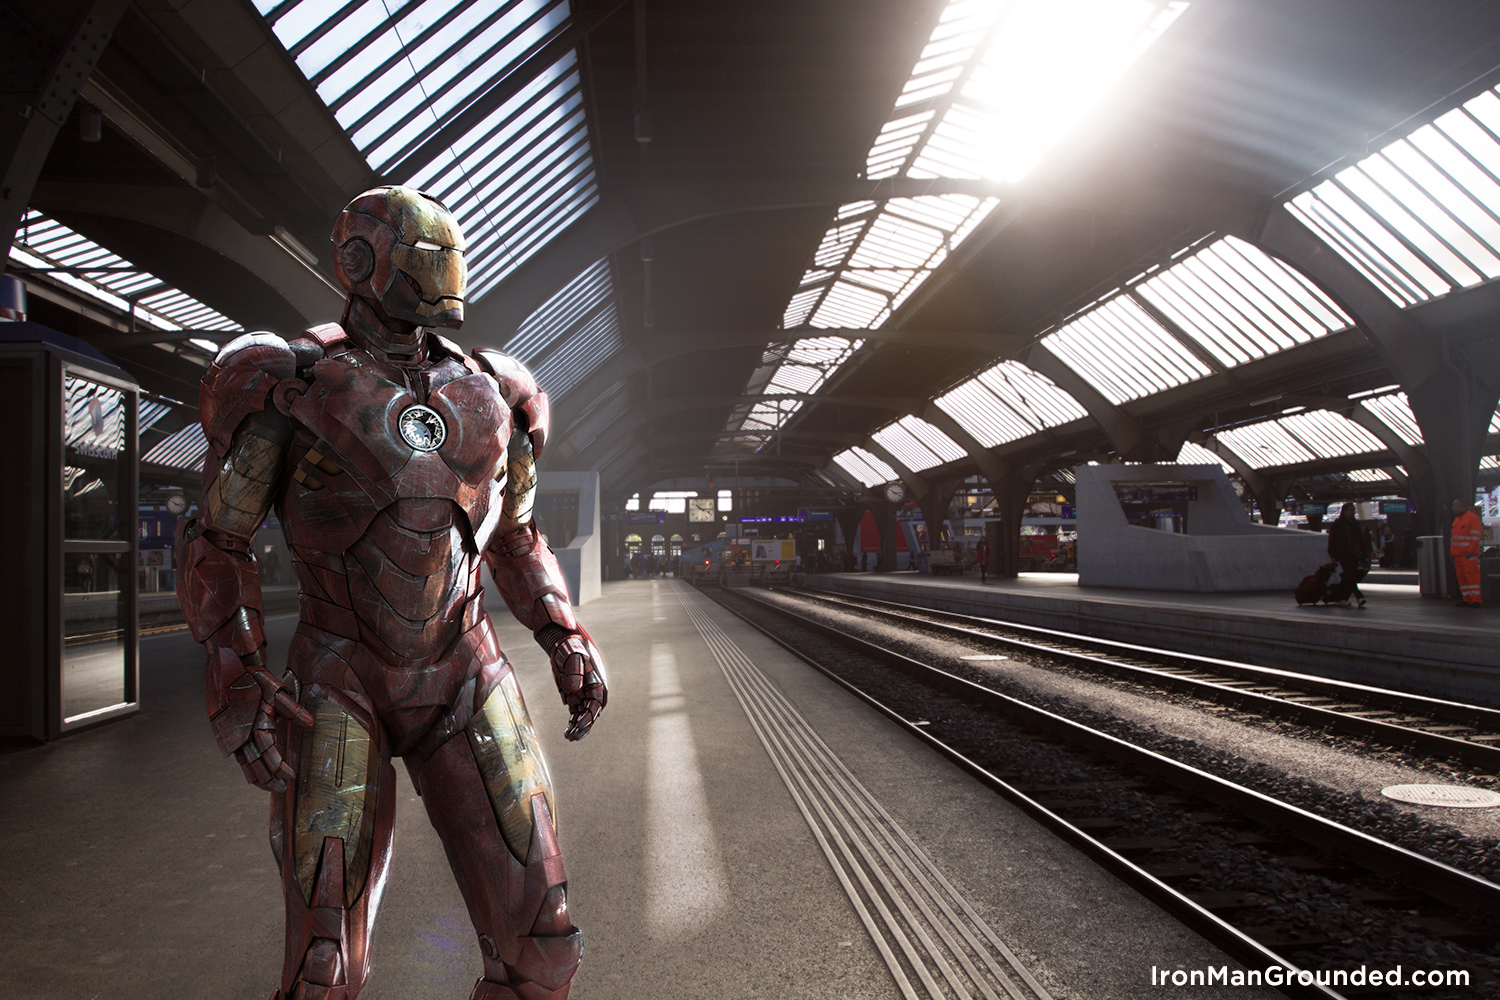 5_iron_man_grounded_zurich_trainstation_raffael_dickreuter